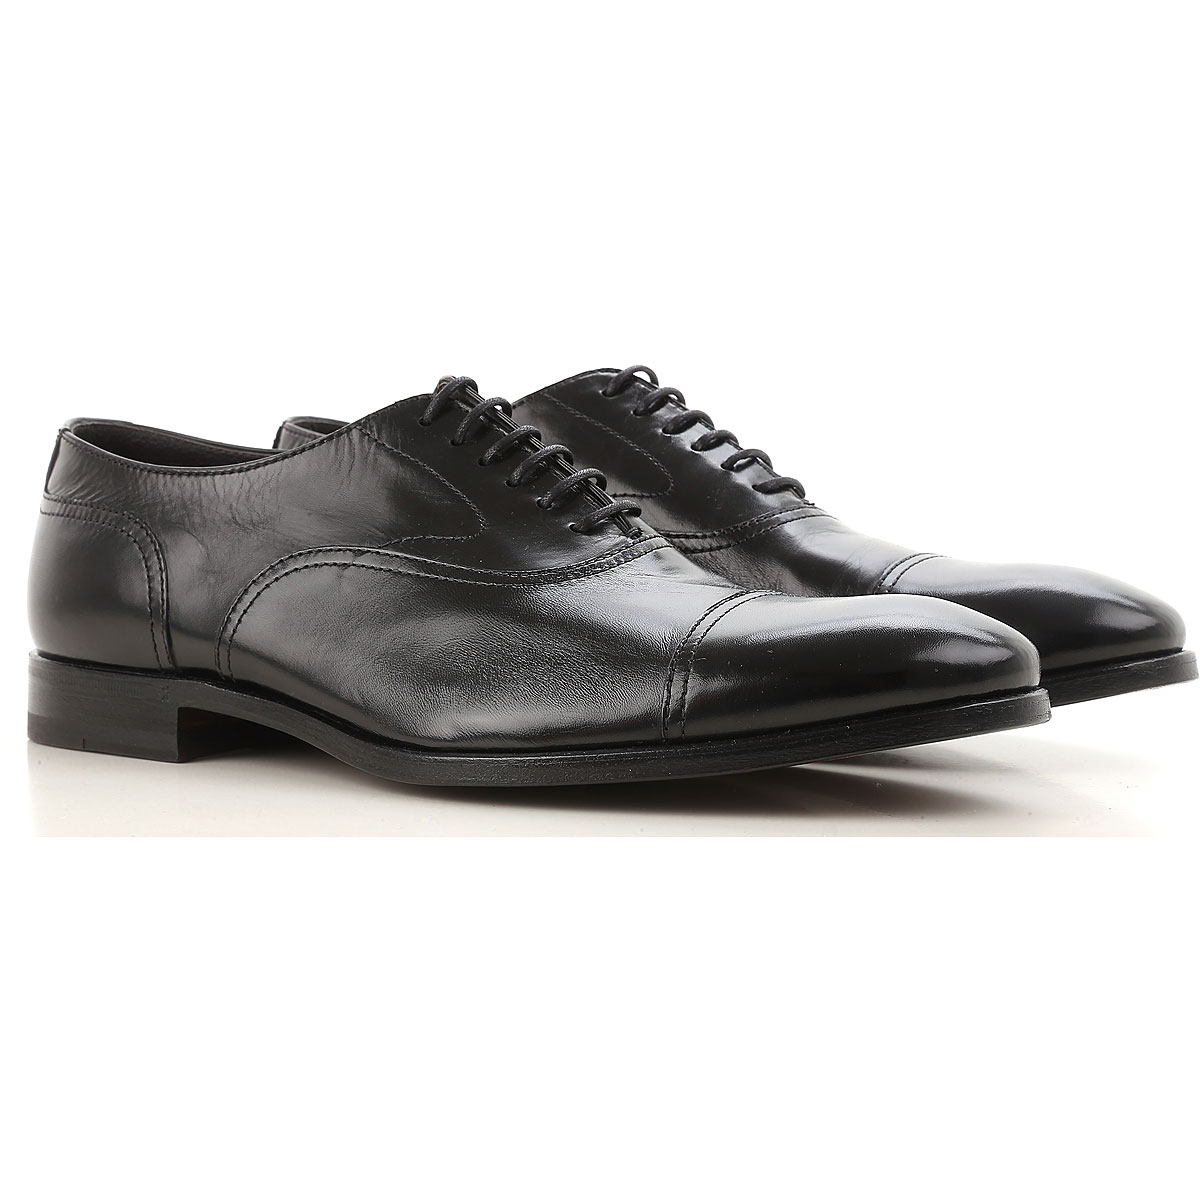 Image of Henderson Lace Up Shoes for Men Oxfords, Derbies and Brogues, Black, Leather, 2017, 10 10.5 11 6 7 7.5 8 8.5 9 9.5